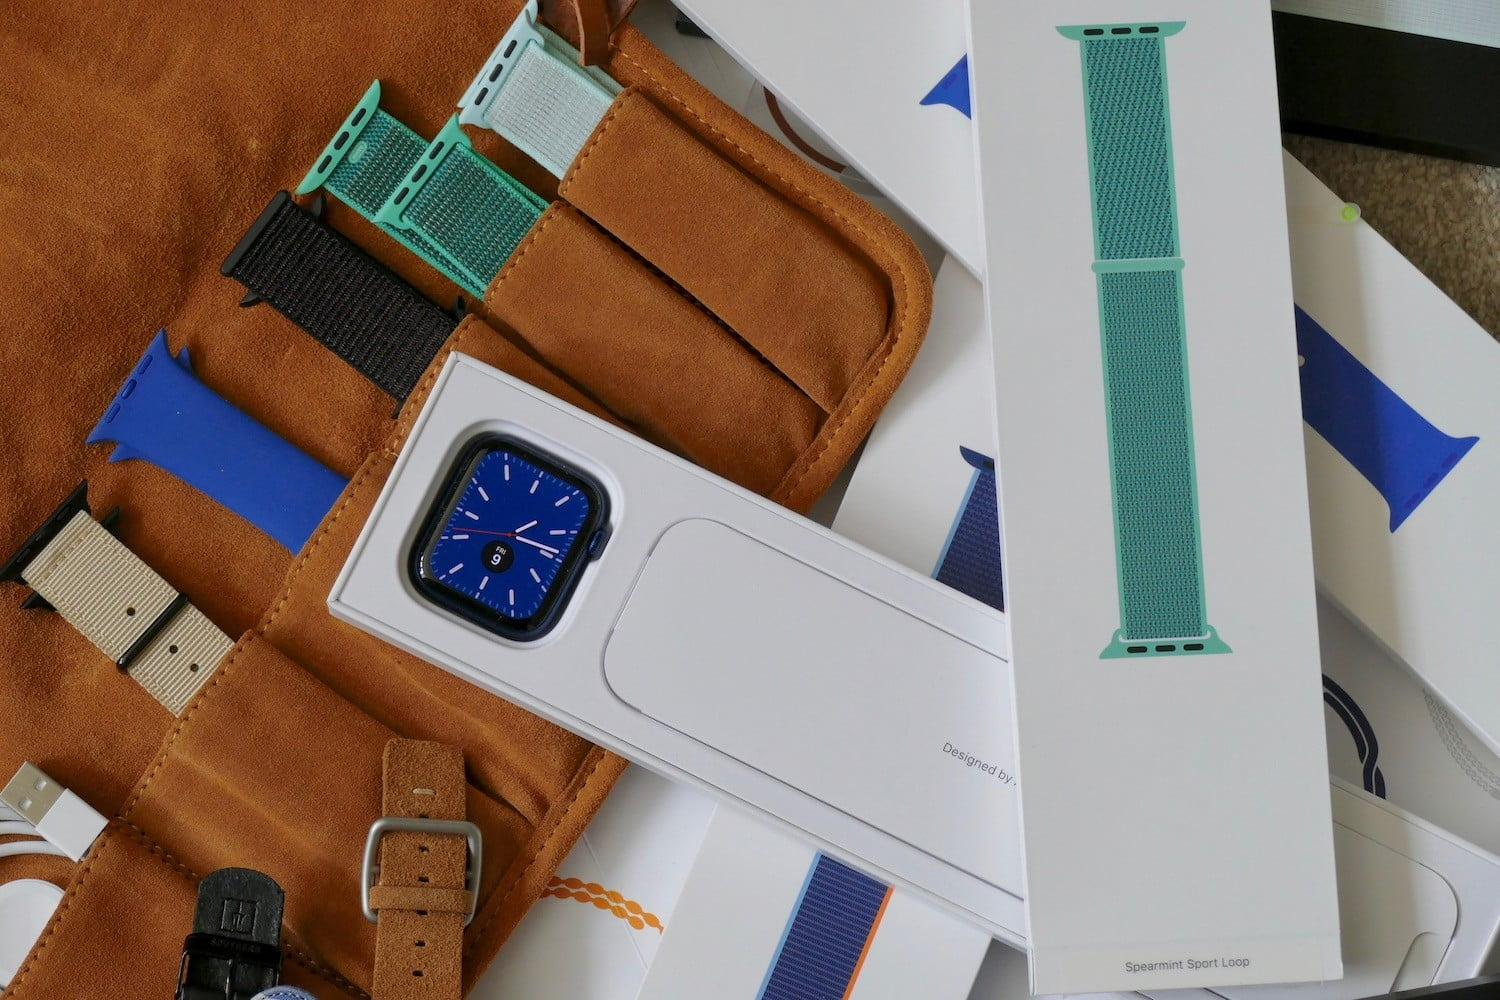 Hey Apple, please sell me an Apple Watch without a strap